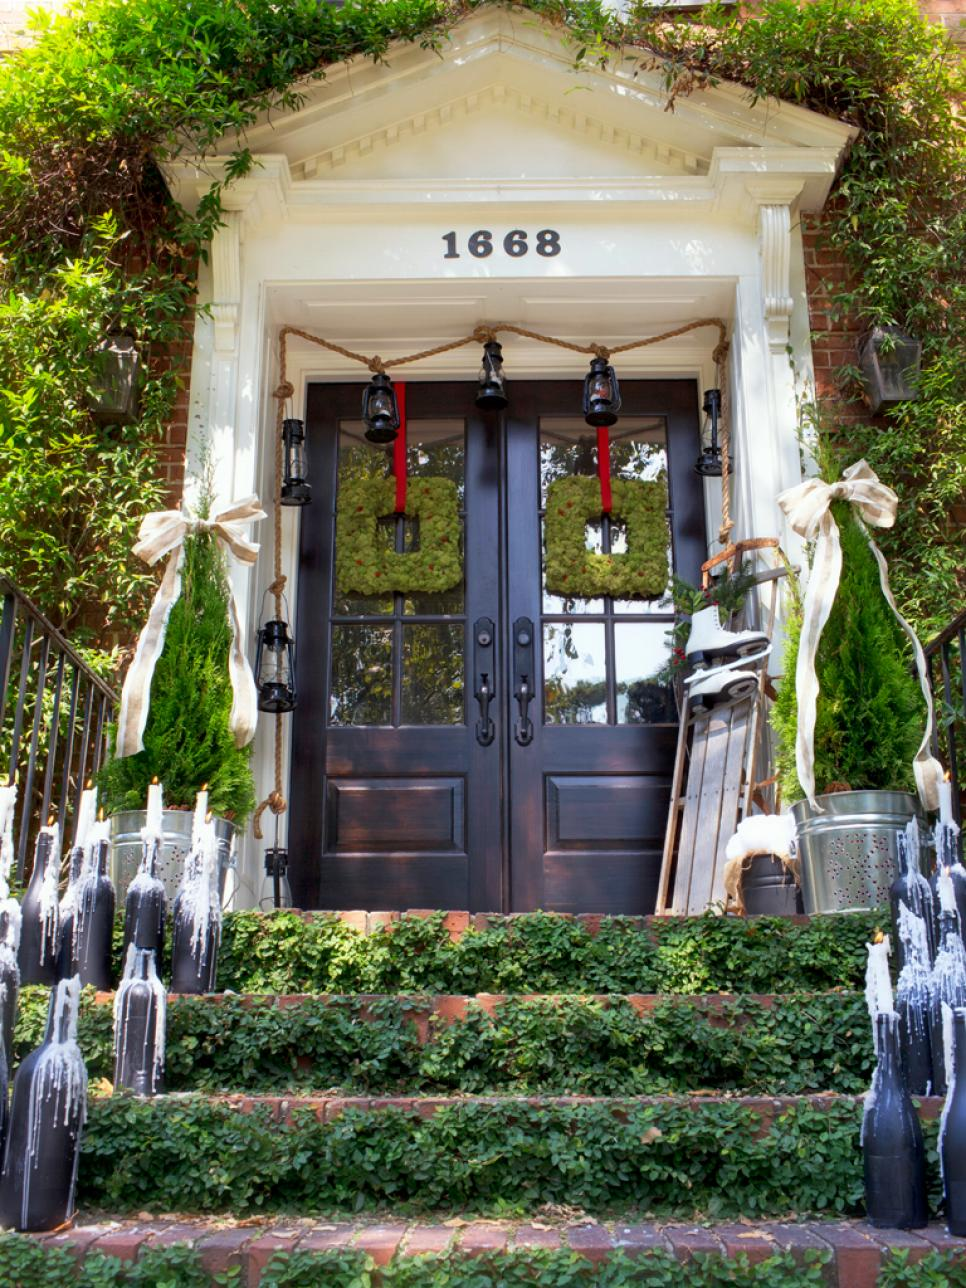 Christmas decorating ideas for porch festival around the - Christmas decorating exterior house ...